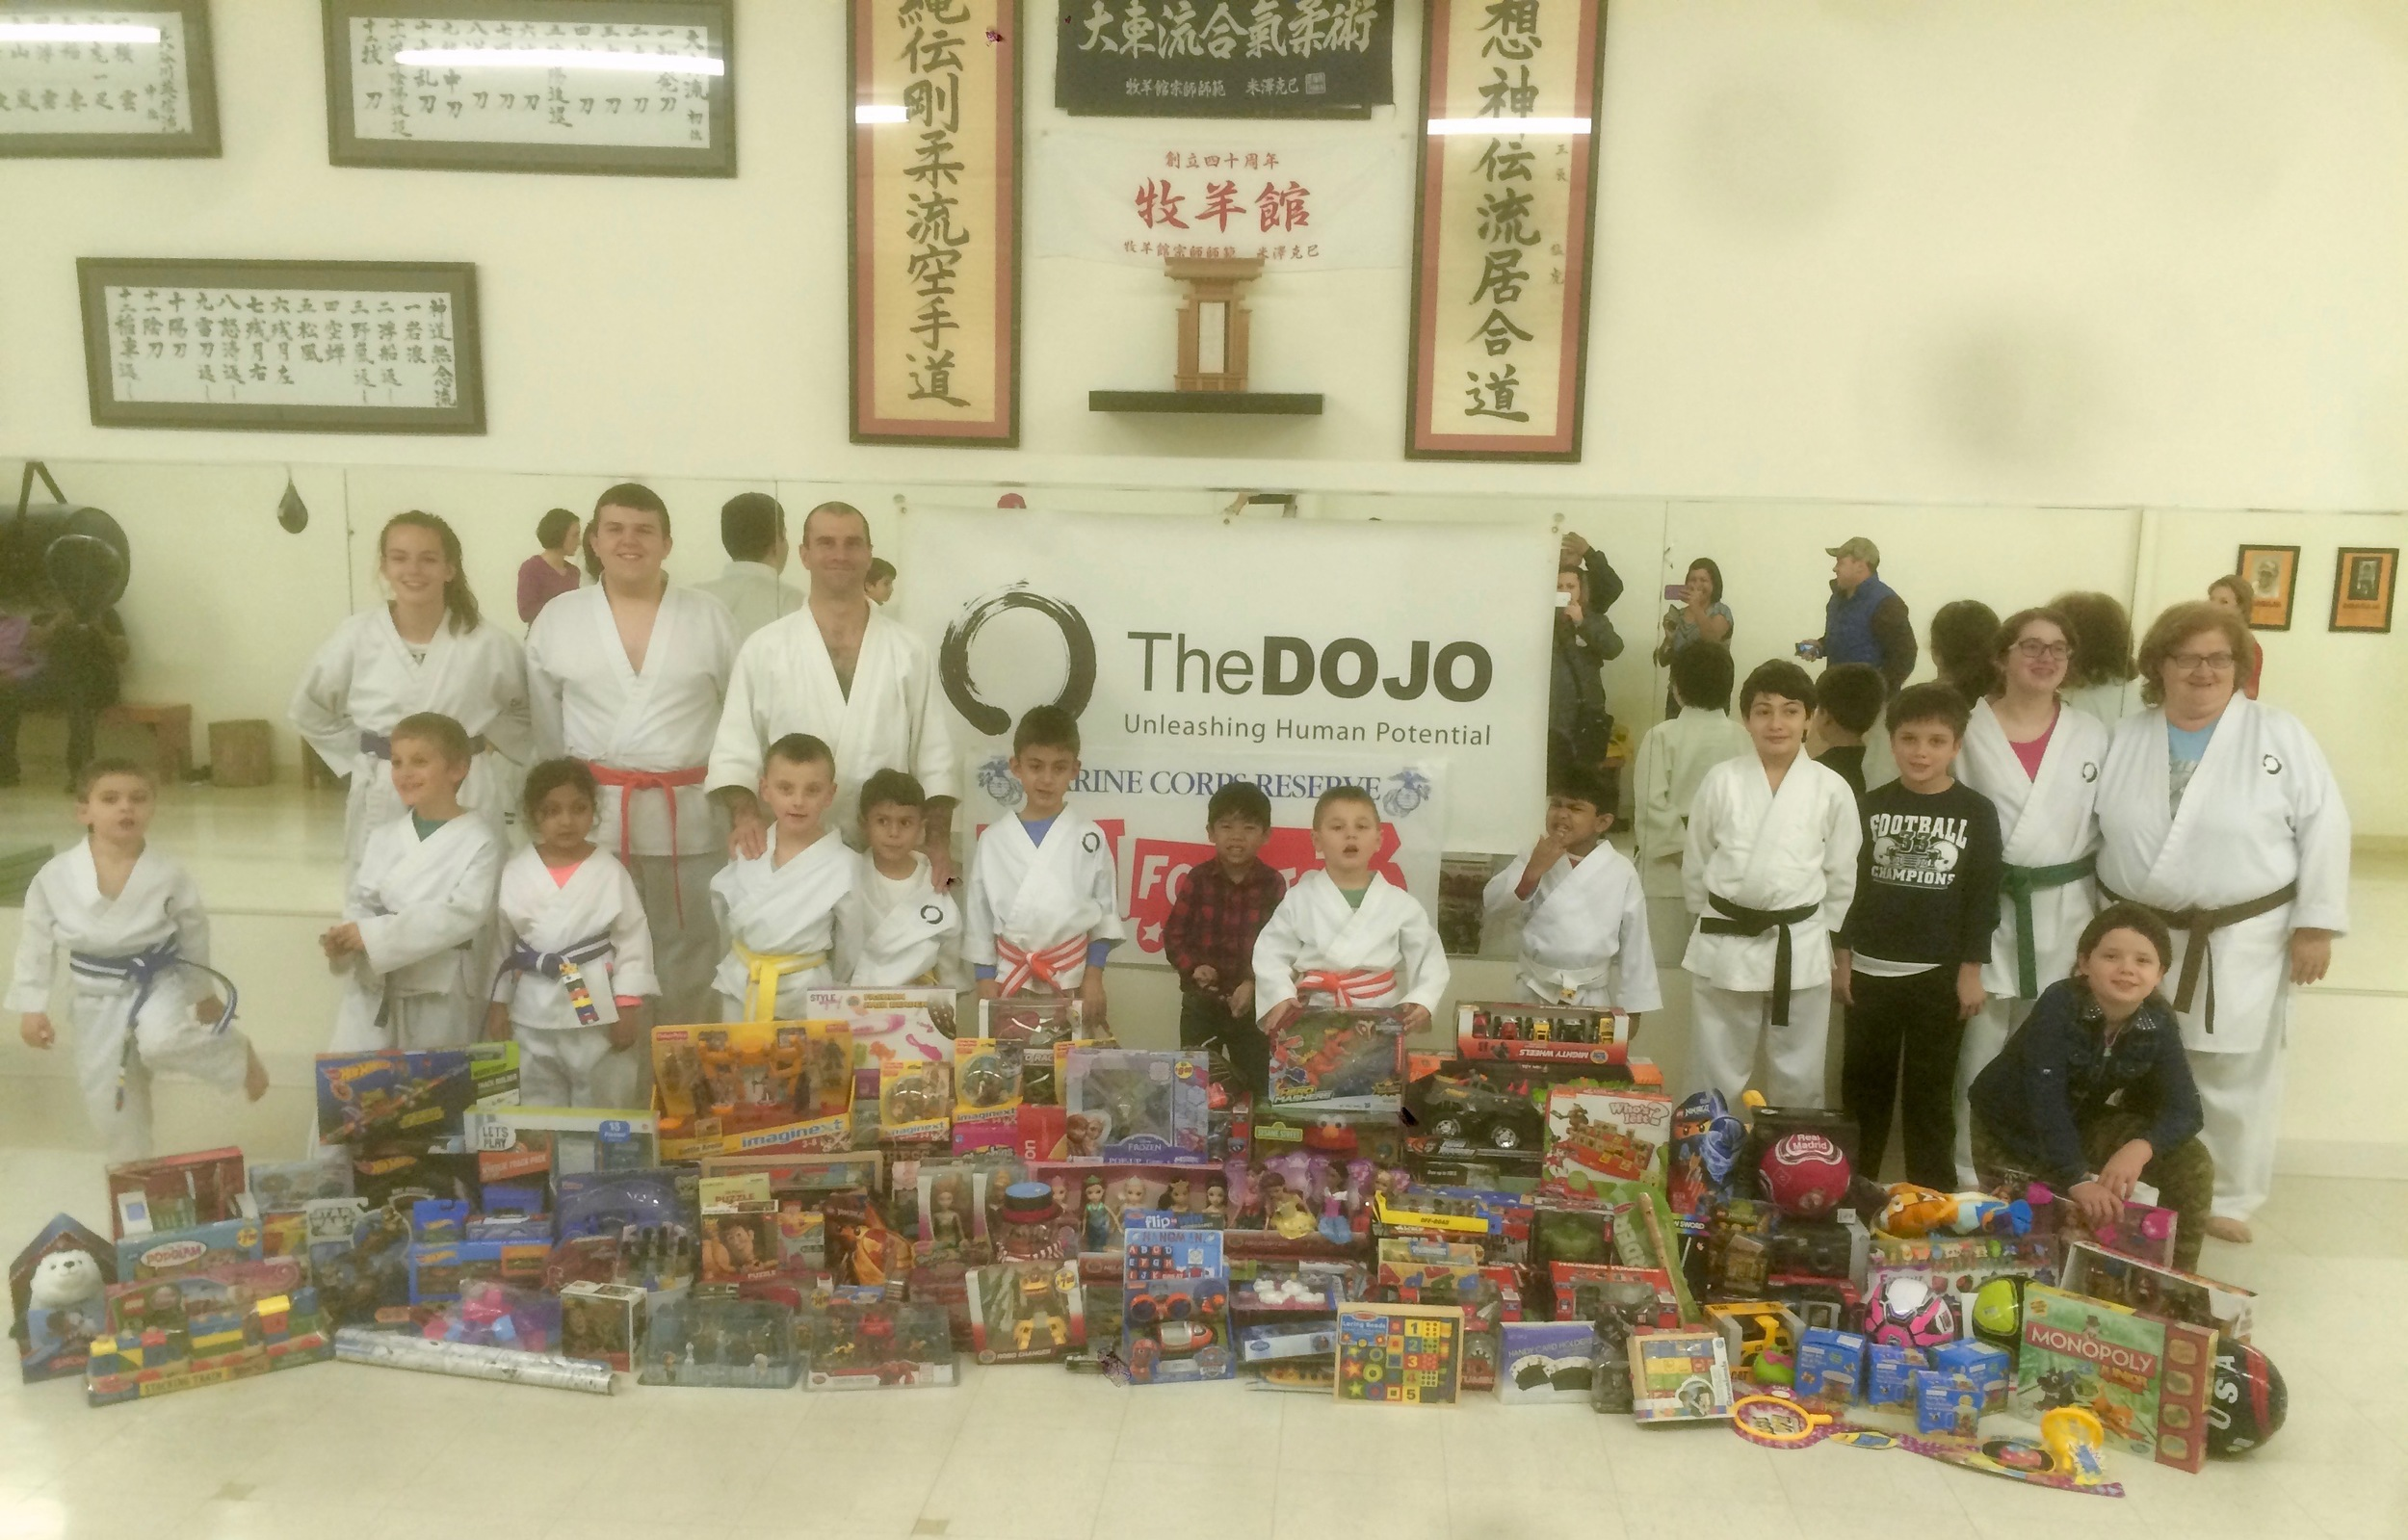 toys-for-tots---thedojo-toy-drive_23747334681_o.jpg